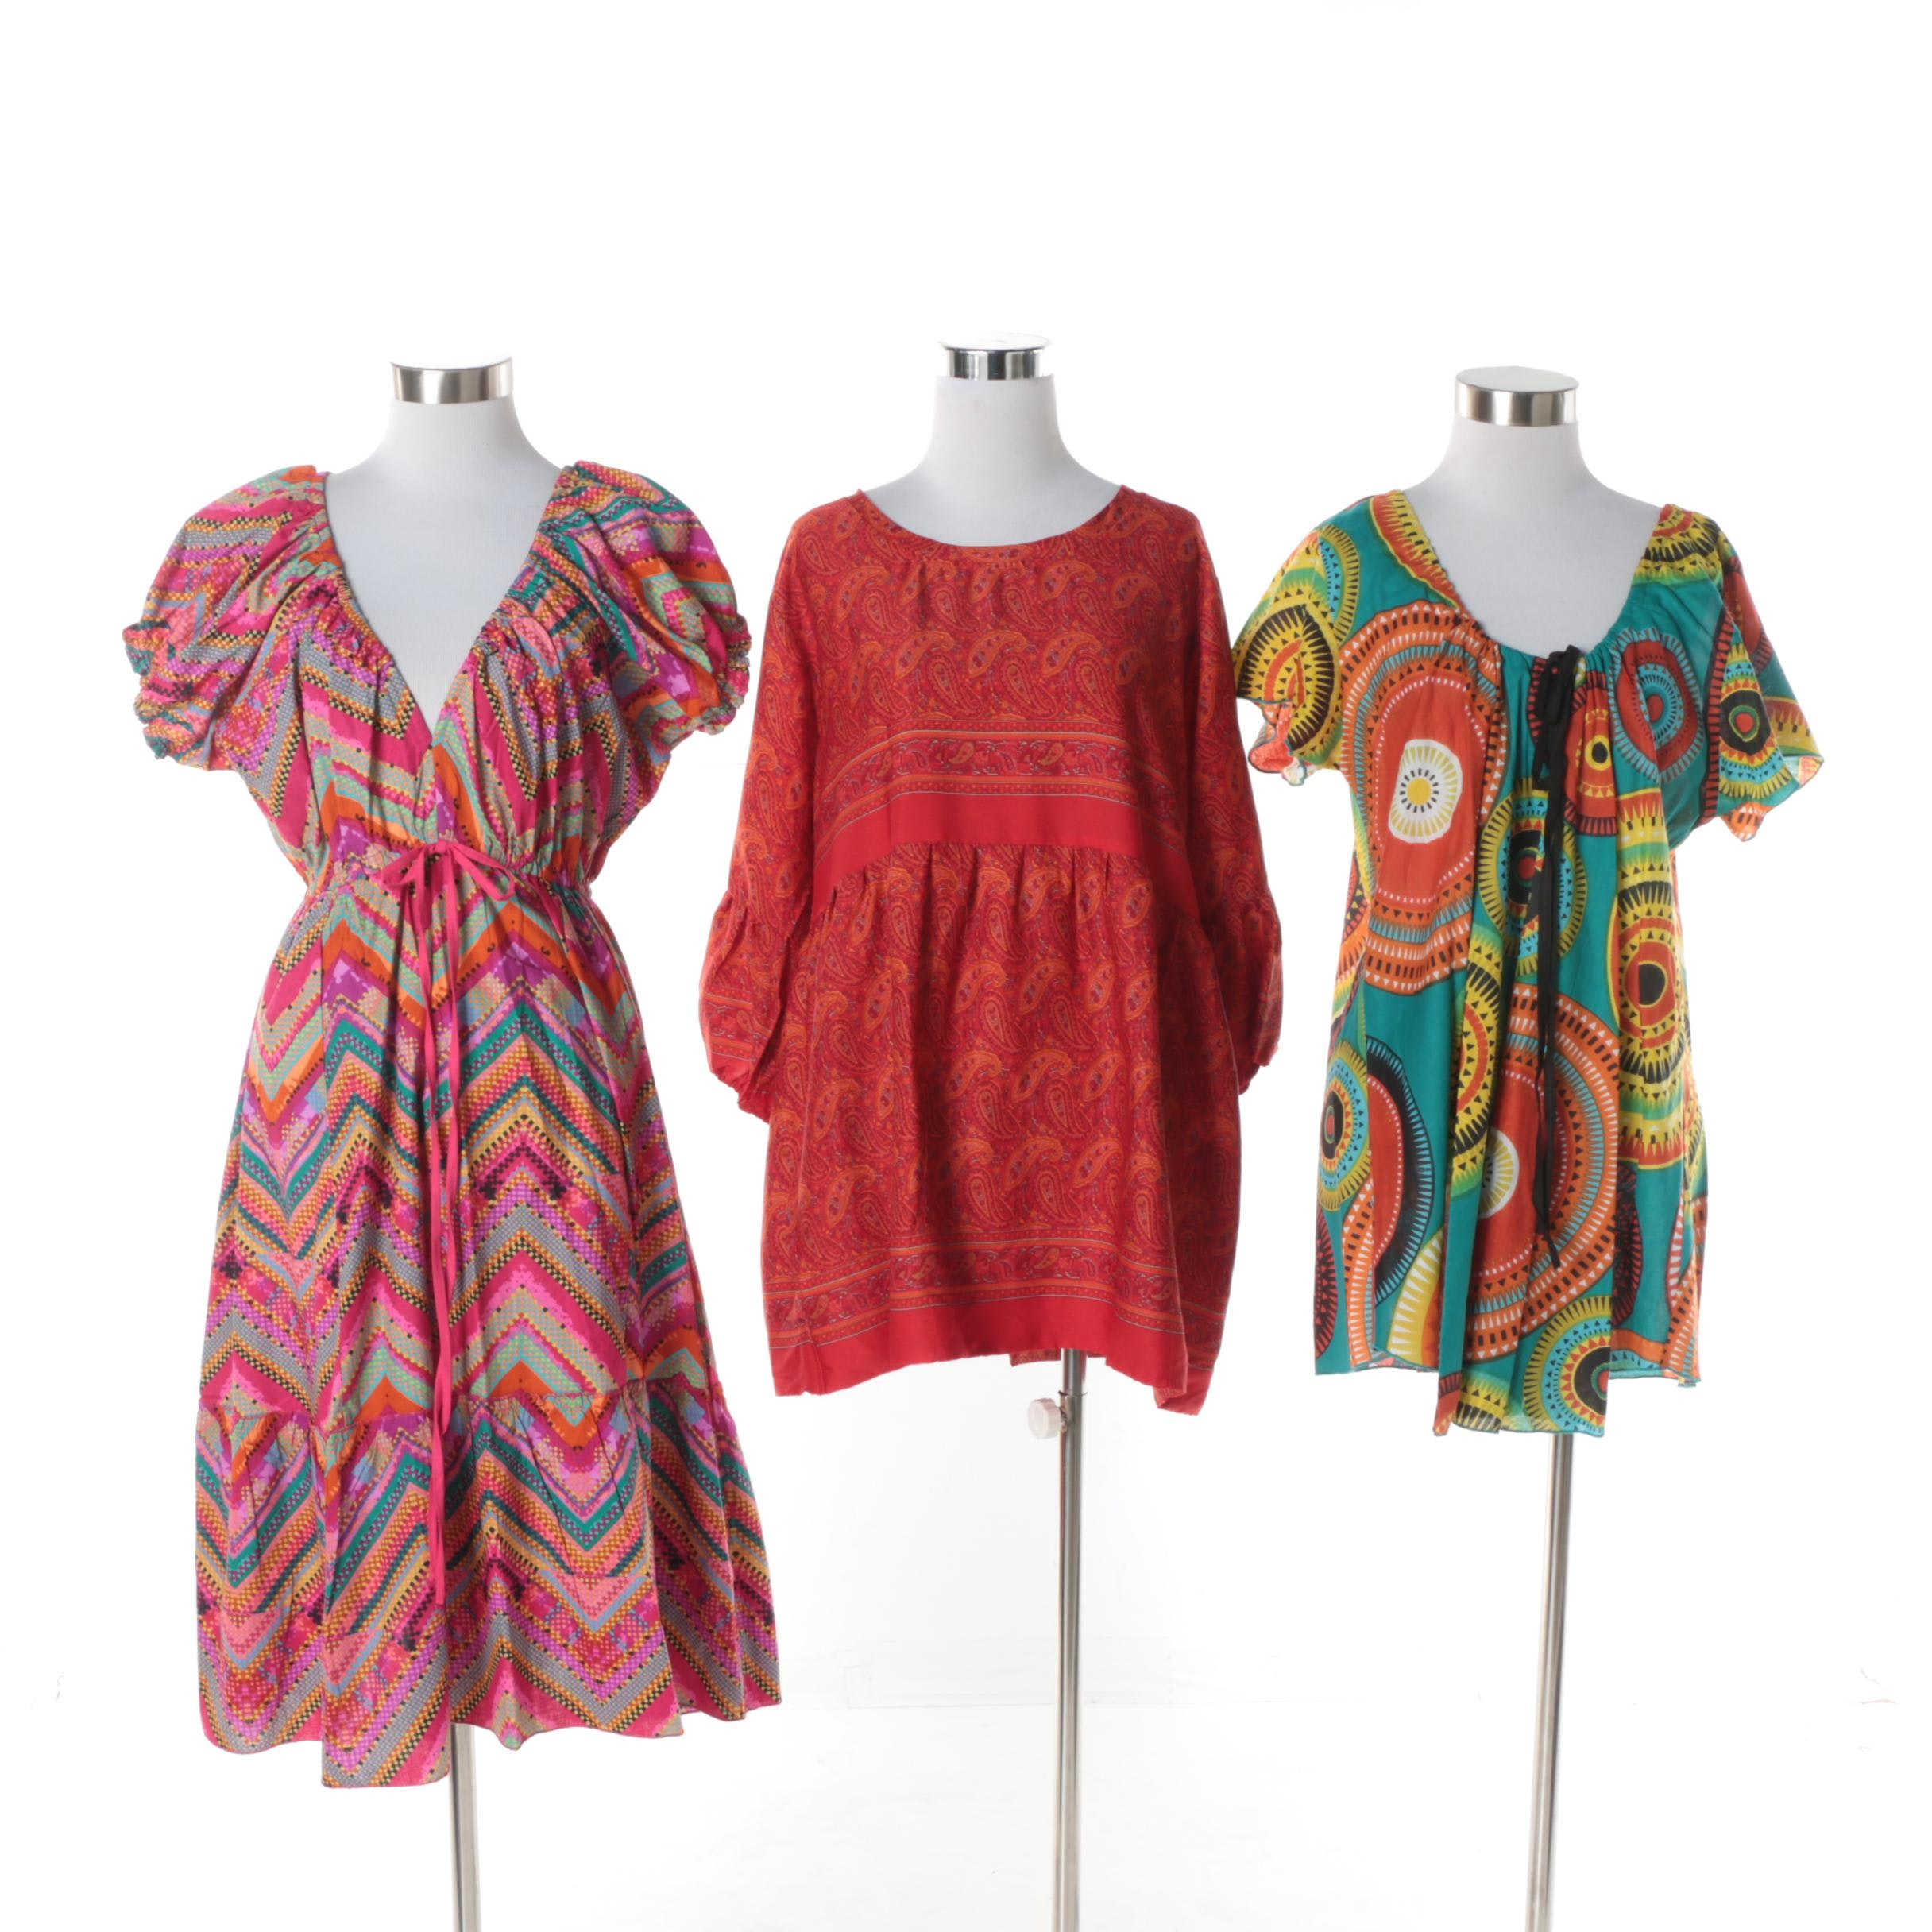 Aller Simplement Paisley and Mandala Pattern Tunics and Chevron Pattern Dress